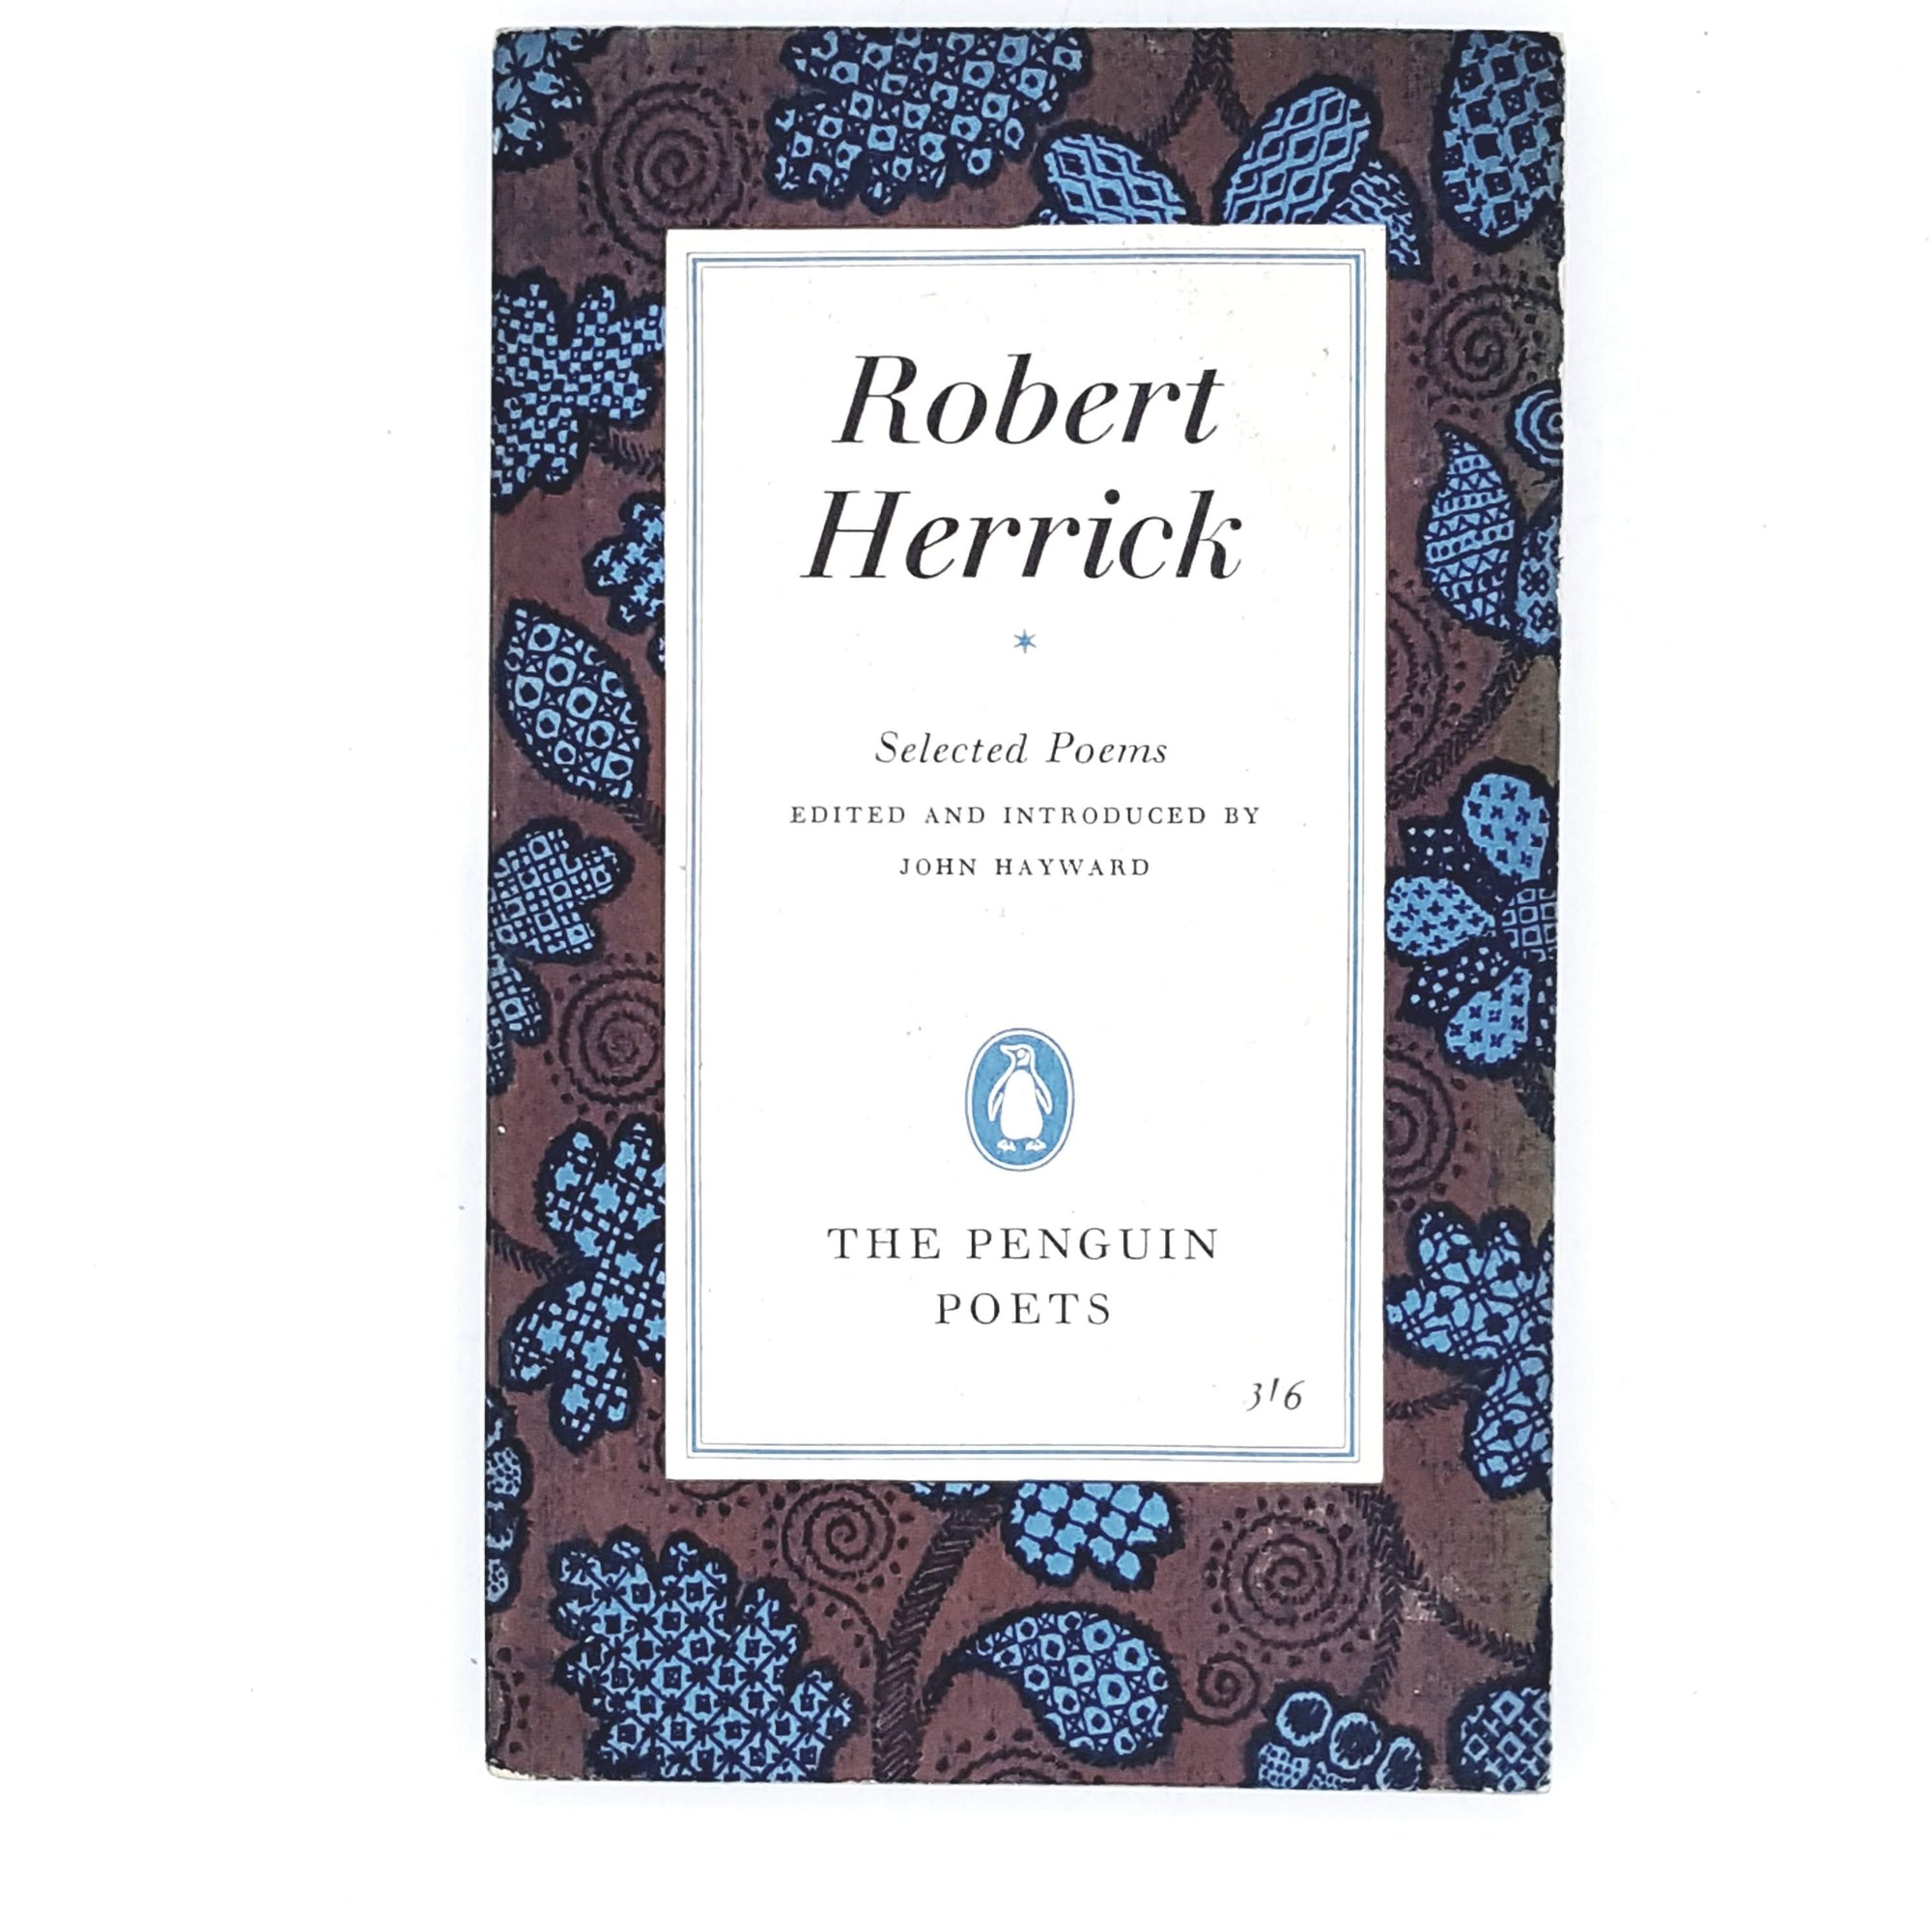 First Edition Penguin Robert Herrick's Selected Poems